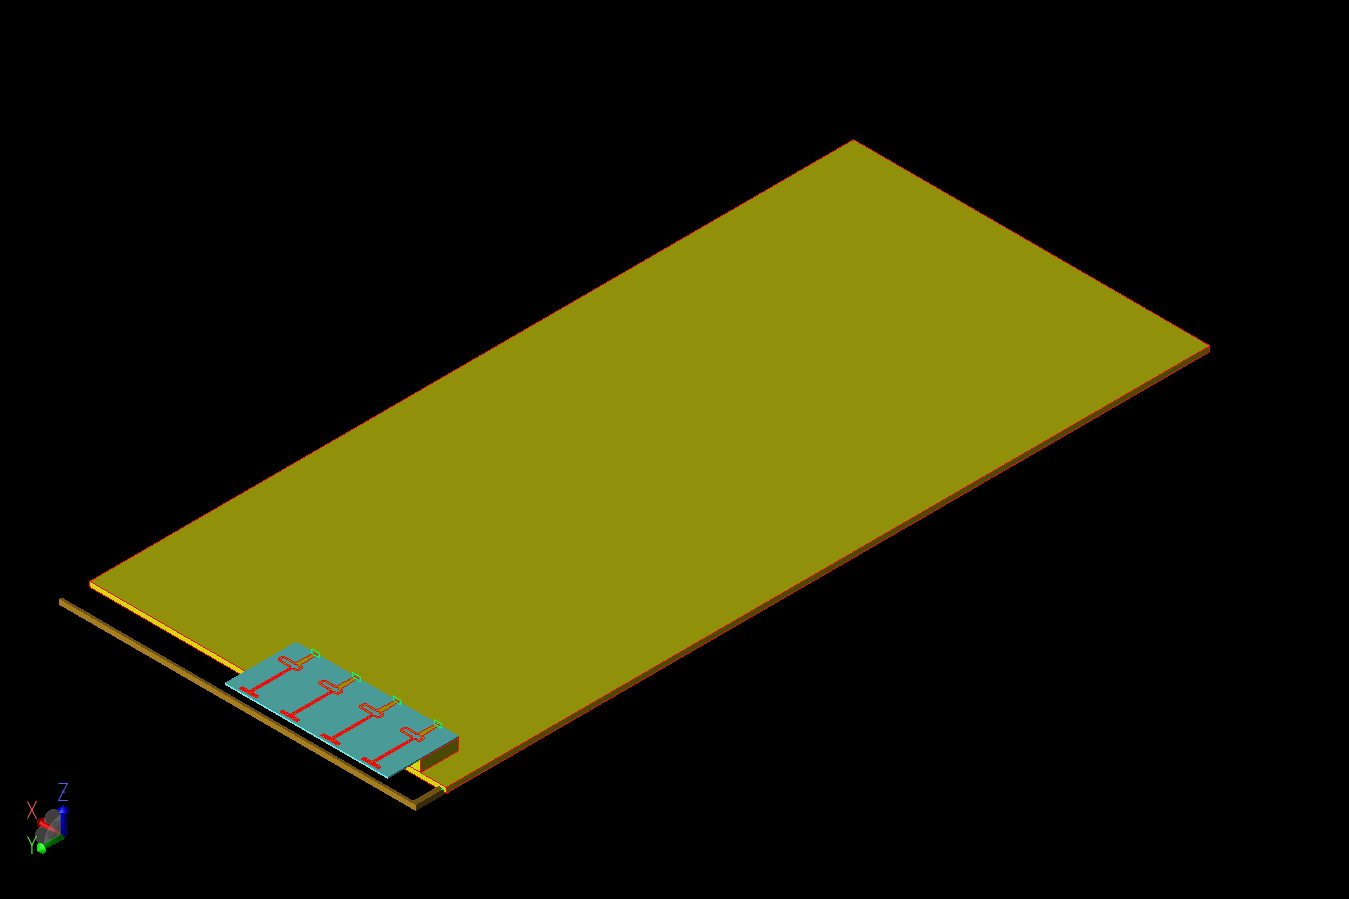 Figure 1: The smartphone design is shown in a three-dimensional CAD representation with the 4G antenna and 5G array structures visible at the left on one end of the large ground plane.